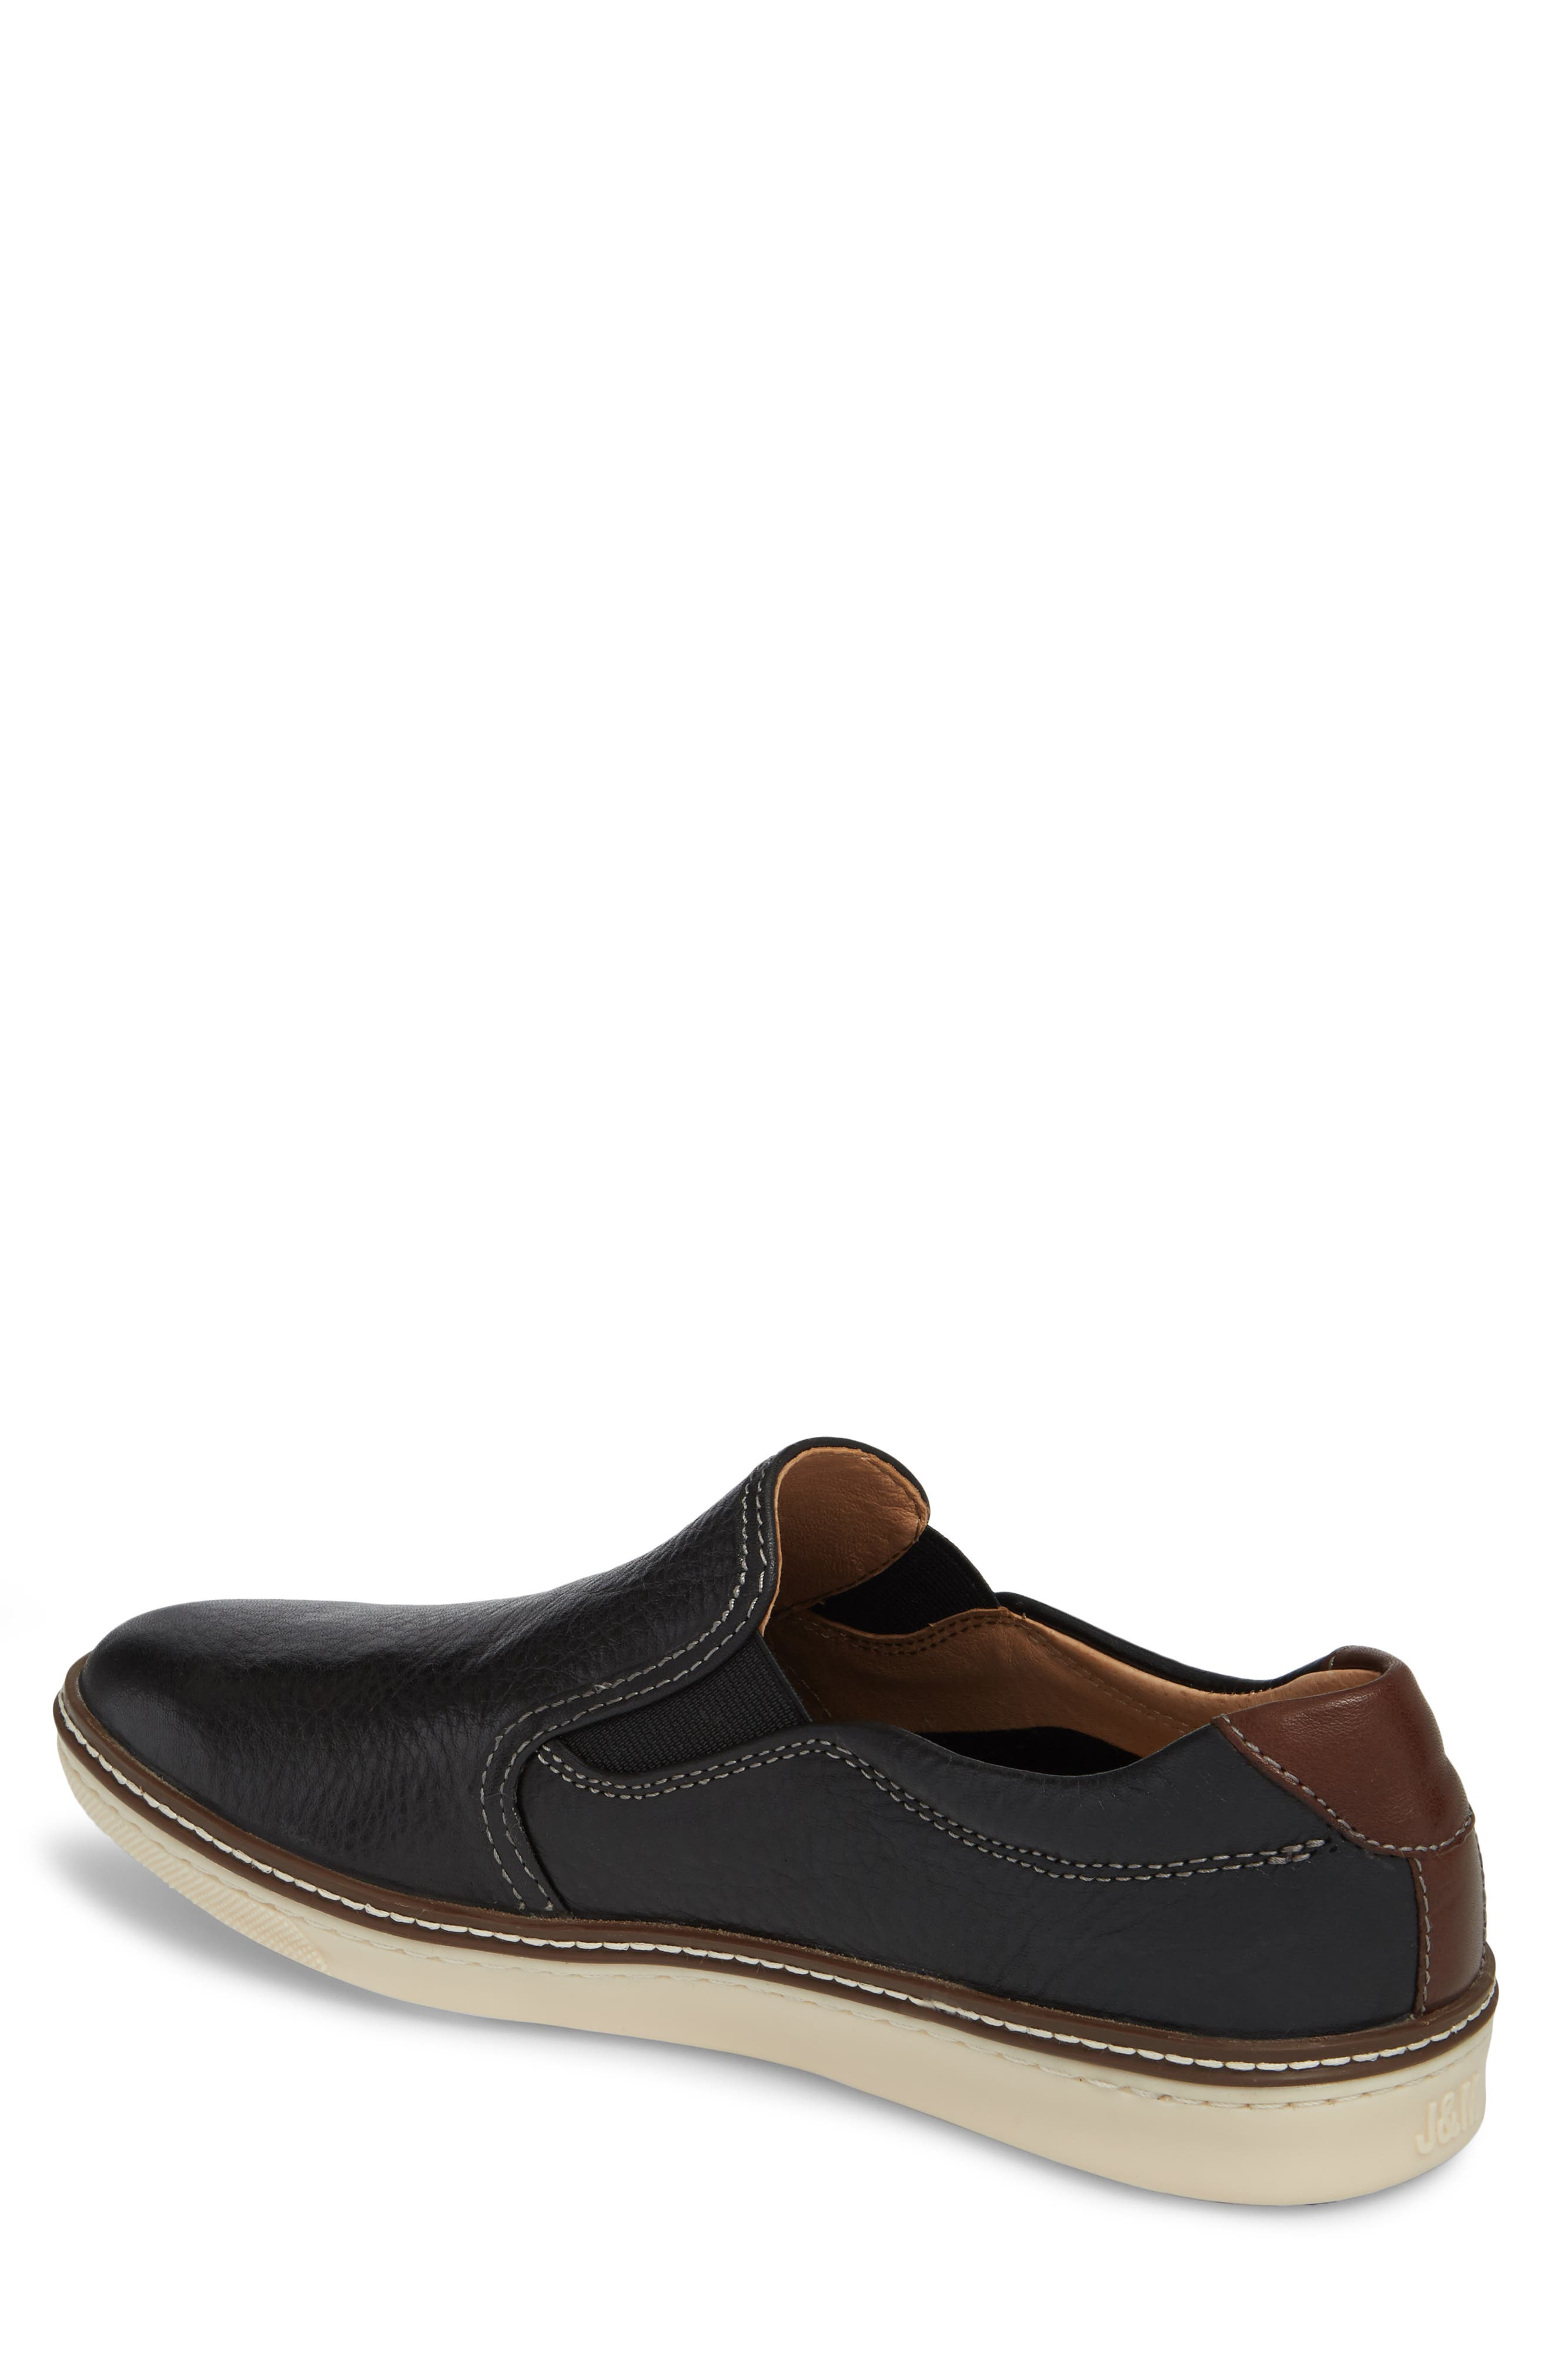 McGuffey Slip-On Sneaker,                             Alternate thumbnail 2, color,                             BLACK LEATHER